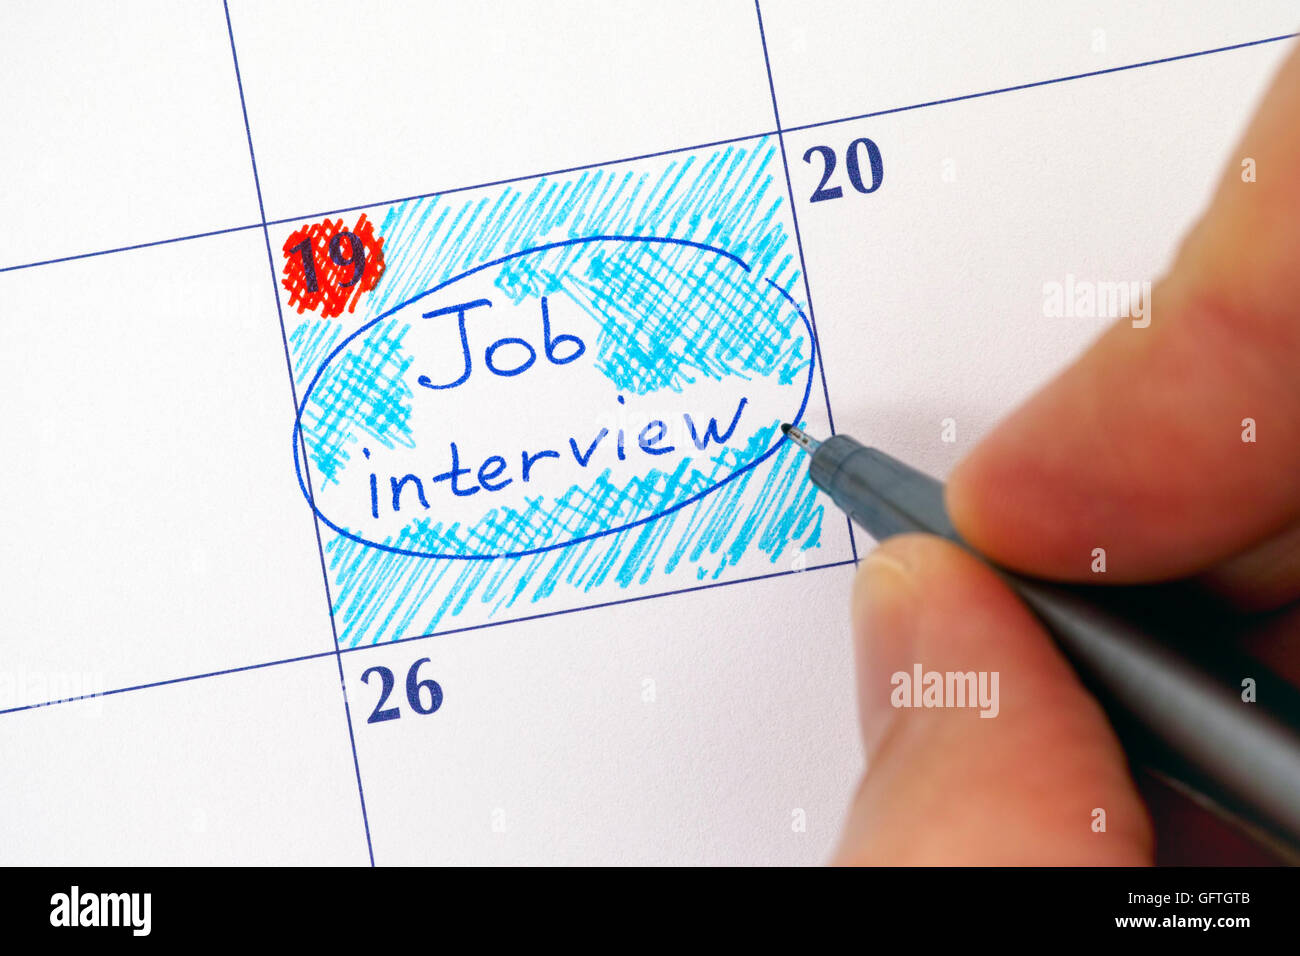 Person hand with pen writing reminder Job Interview in calendar. - Stock Image